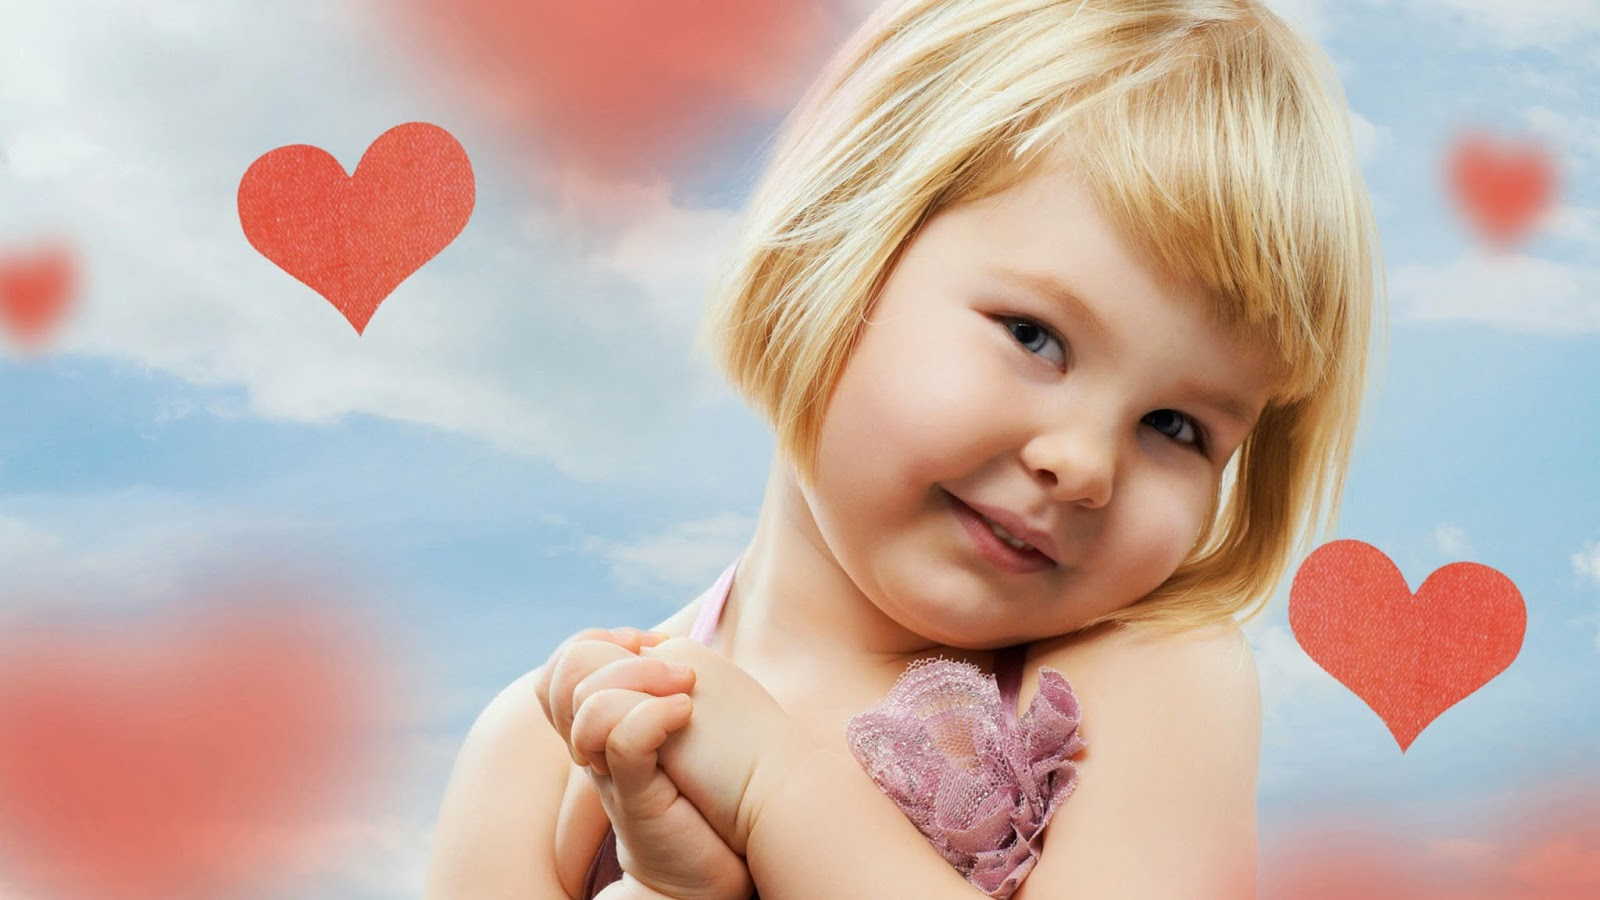 Windows 8 HD Wallpapers: Cute Kids Wallpapers Episode 4